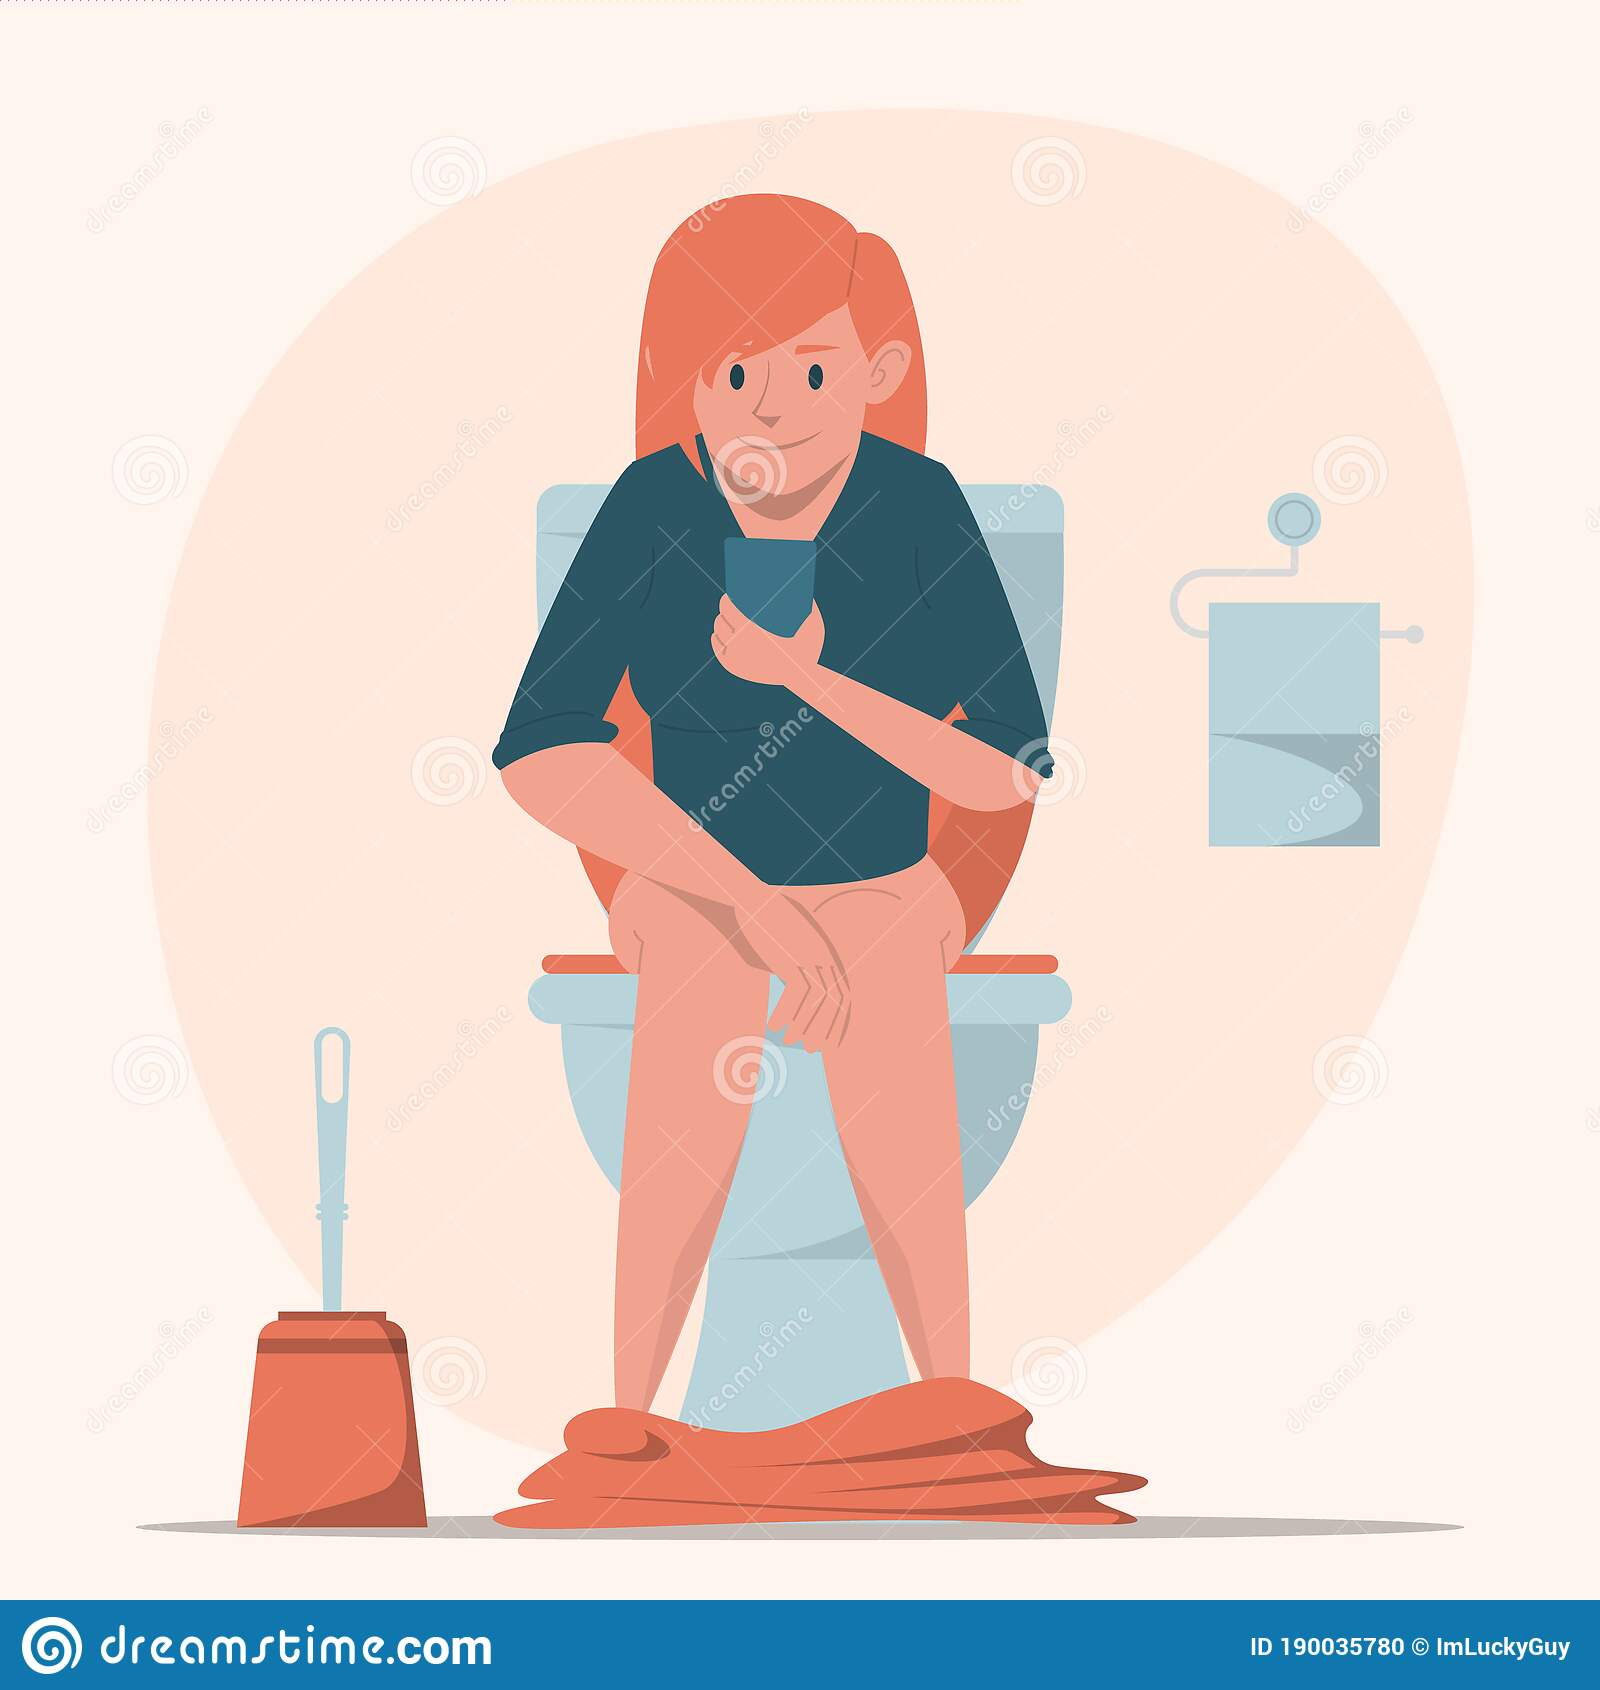 Girl and toilet Royalty Free Vector Image - VectorStock